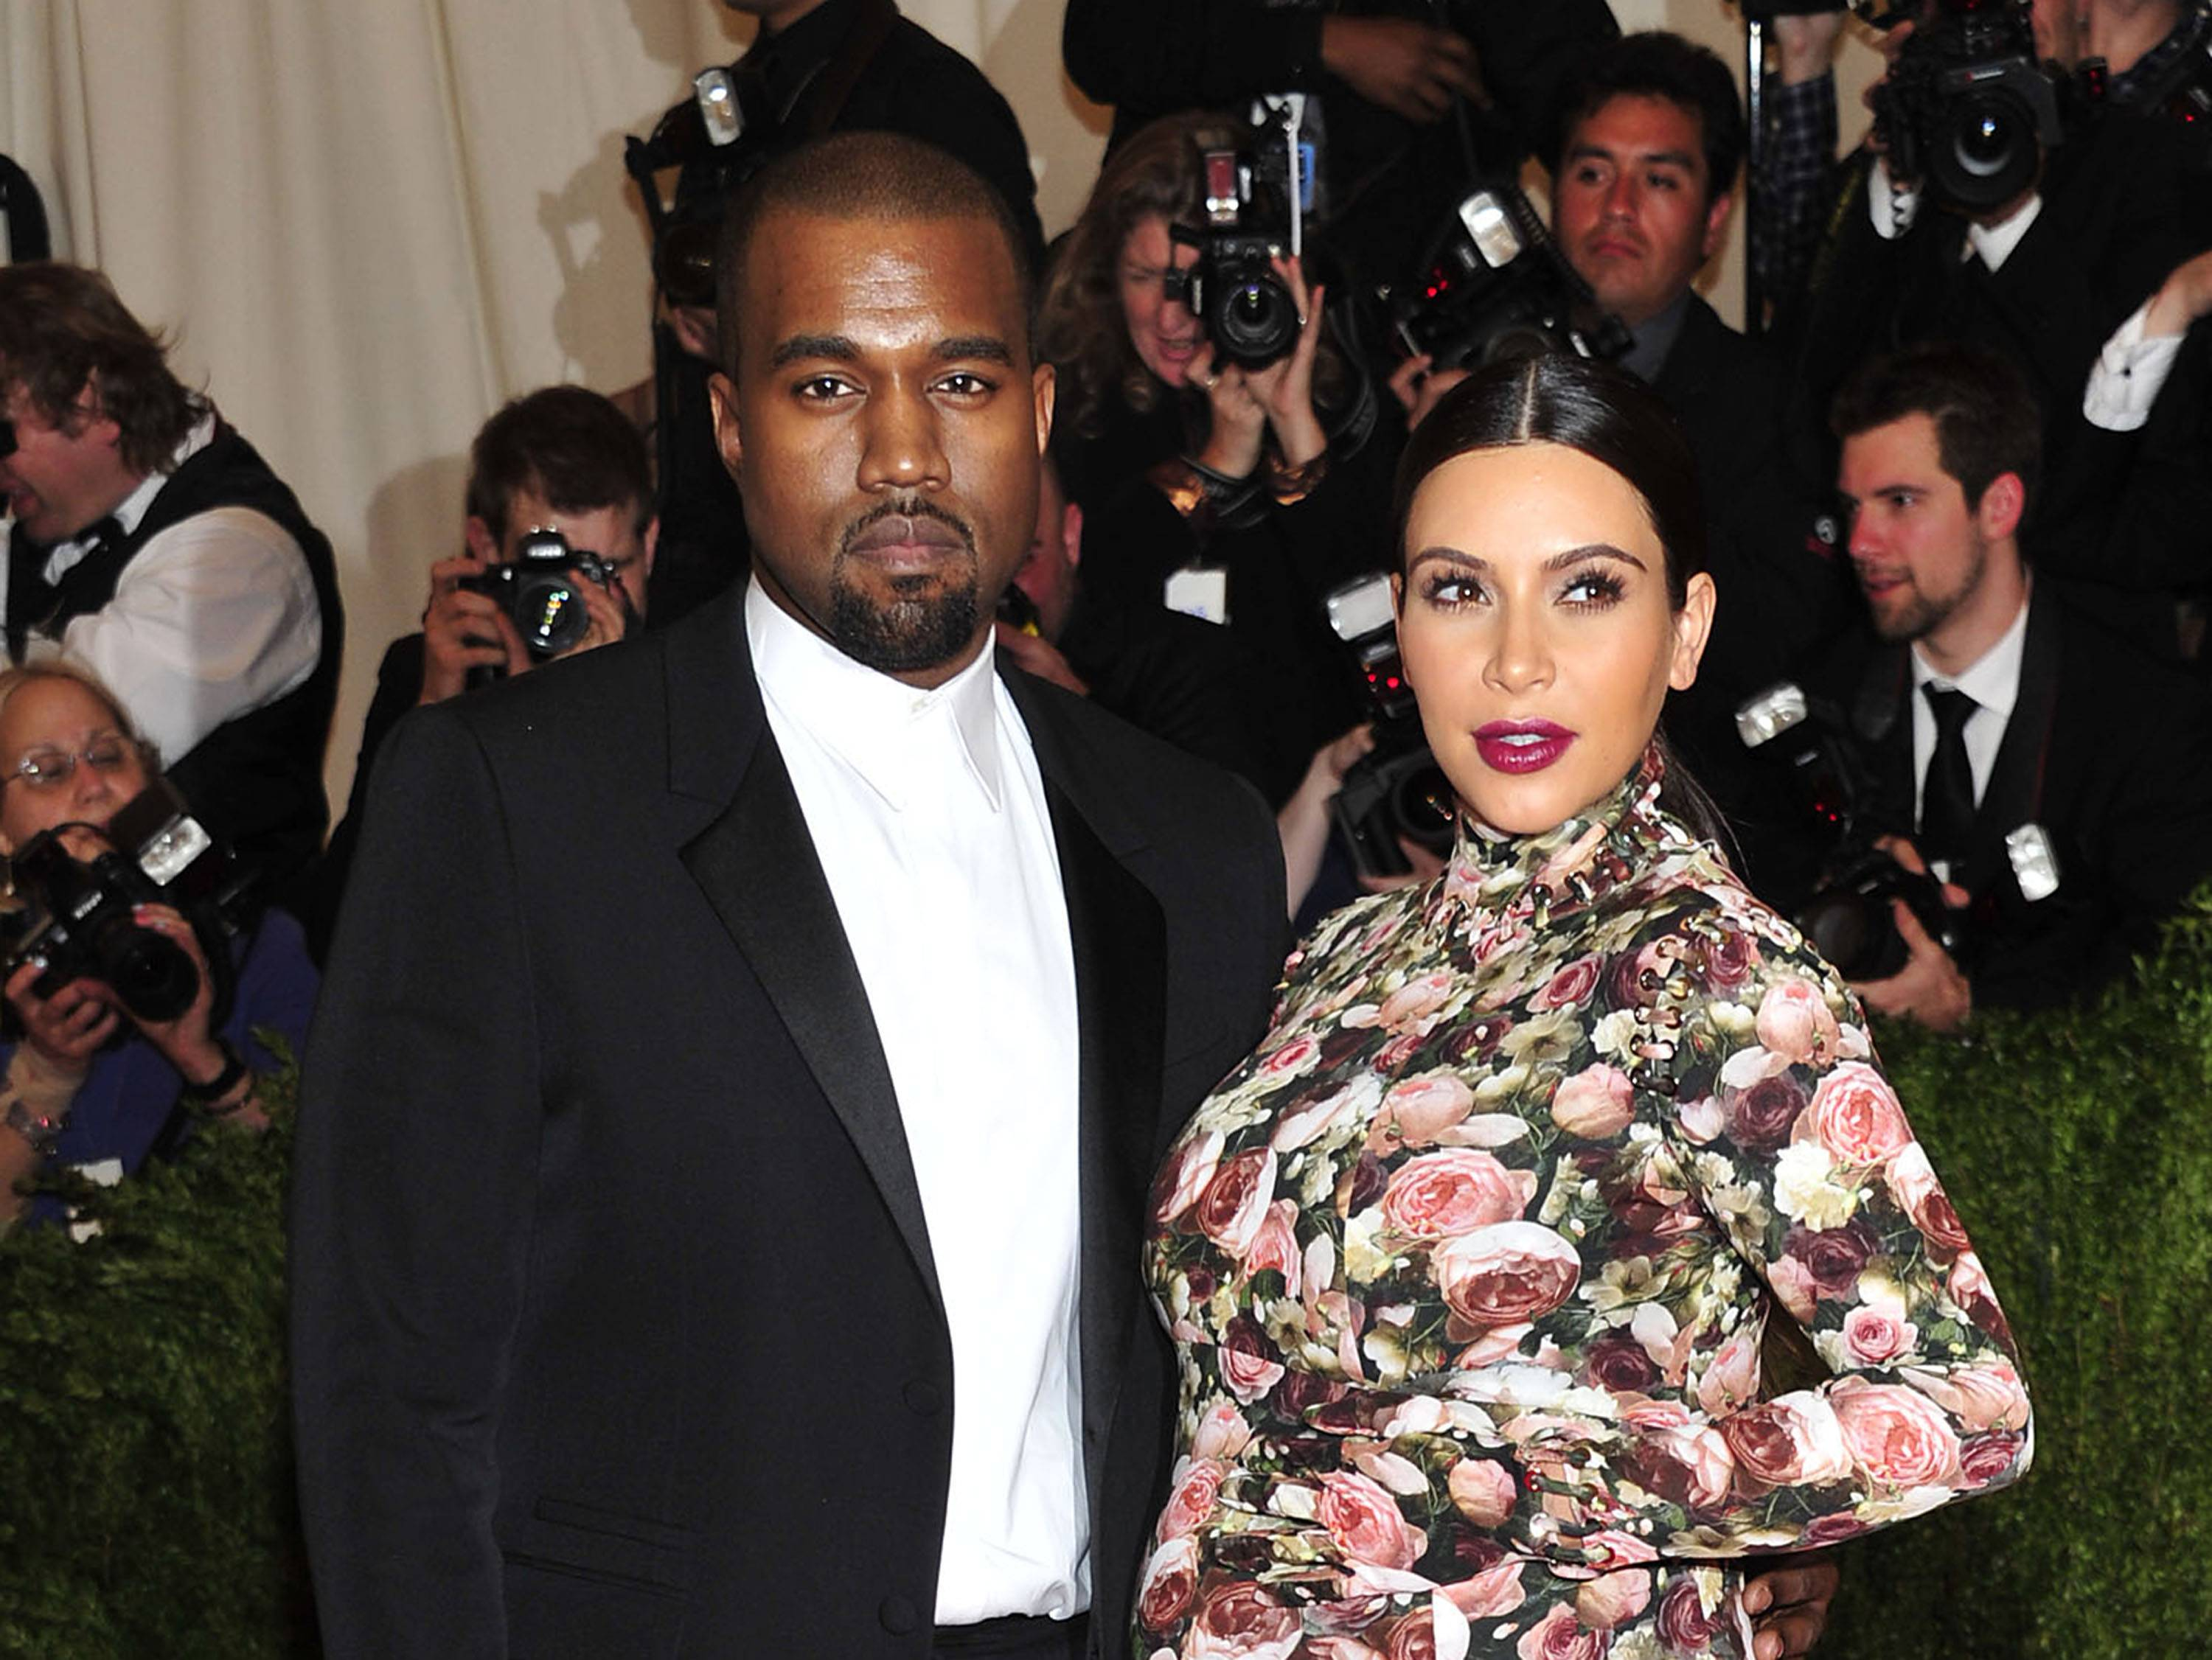 A Los Angeles judge on Tuesday rejected a motion to dismiss a case filed by Kanye West and Kim Kardashian against Chad Hurley, the co-founder of YouTube who posted video of their engagement on his new video-sharing website.